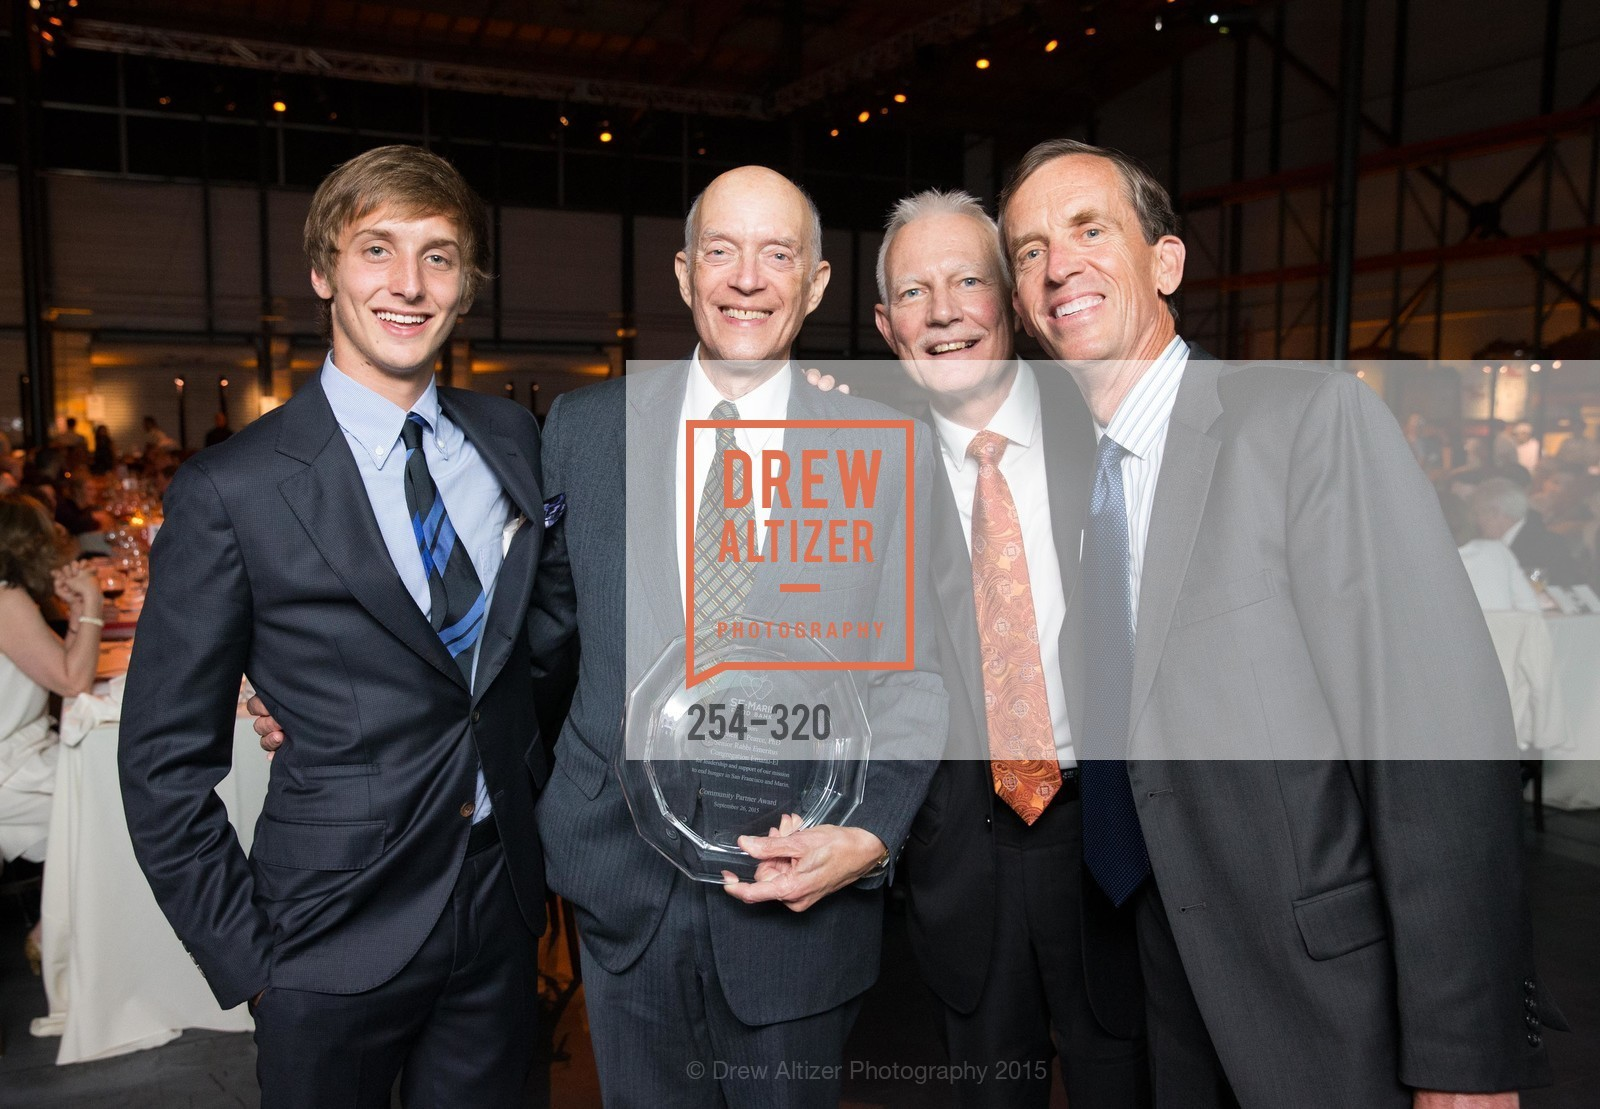 Wyeth Coulter, Stephen Pearce, Paul Ash, Tim Geraghty, SF - Marin Food Bank Presents ONE BIG TABLE, SF- Marin Food Bank. 900 Pennsylvania Ave, September 26th, 2015,Drew Altizer, Drew Altizer Photography, full-service agency, private events, San Francisco photographer, photographer california